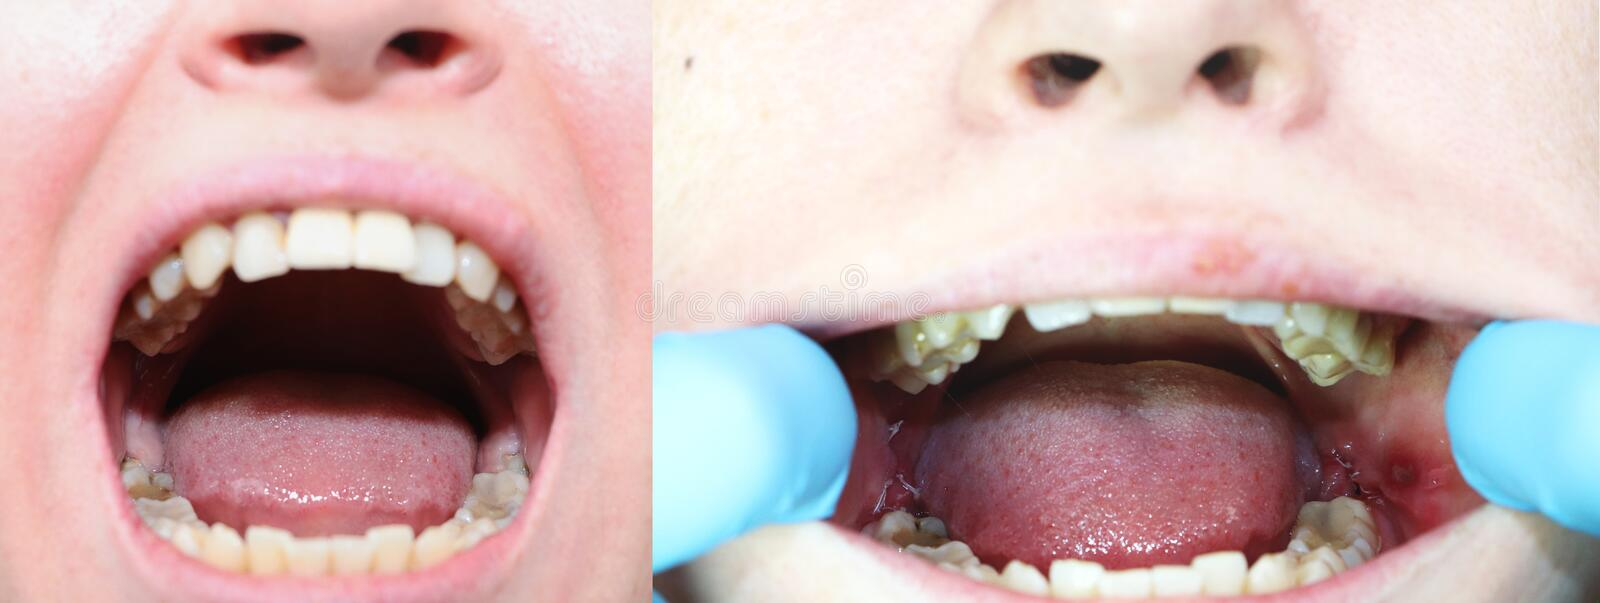 Before and after the operation to remove wisdom teeth - eights. Close-up of wisdom teeth and stitches after removing them. Close-up of wisdom teeth and stitches royalty free stock images